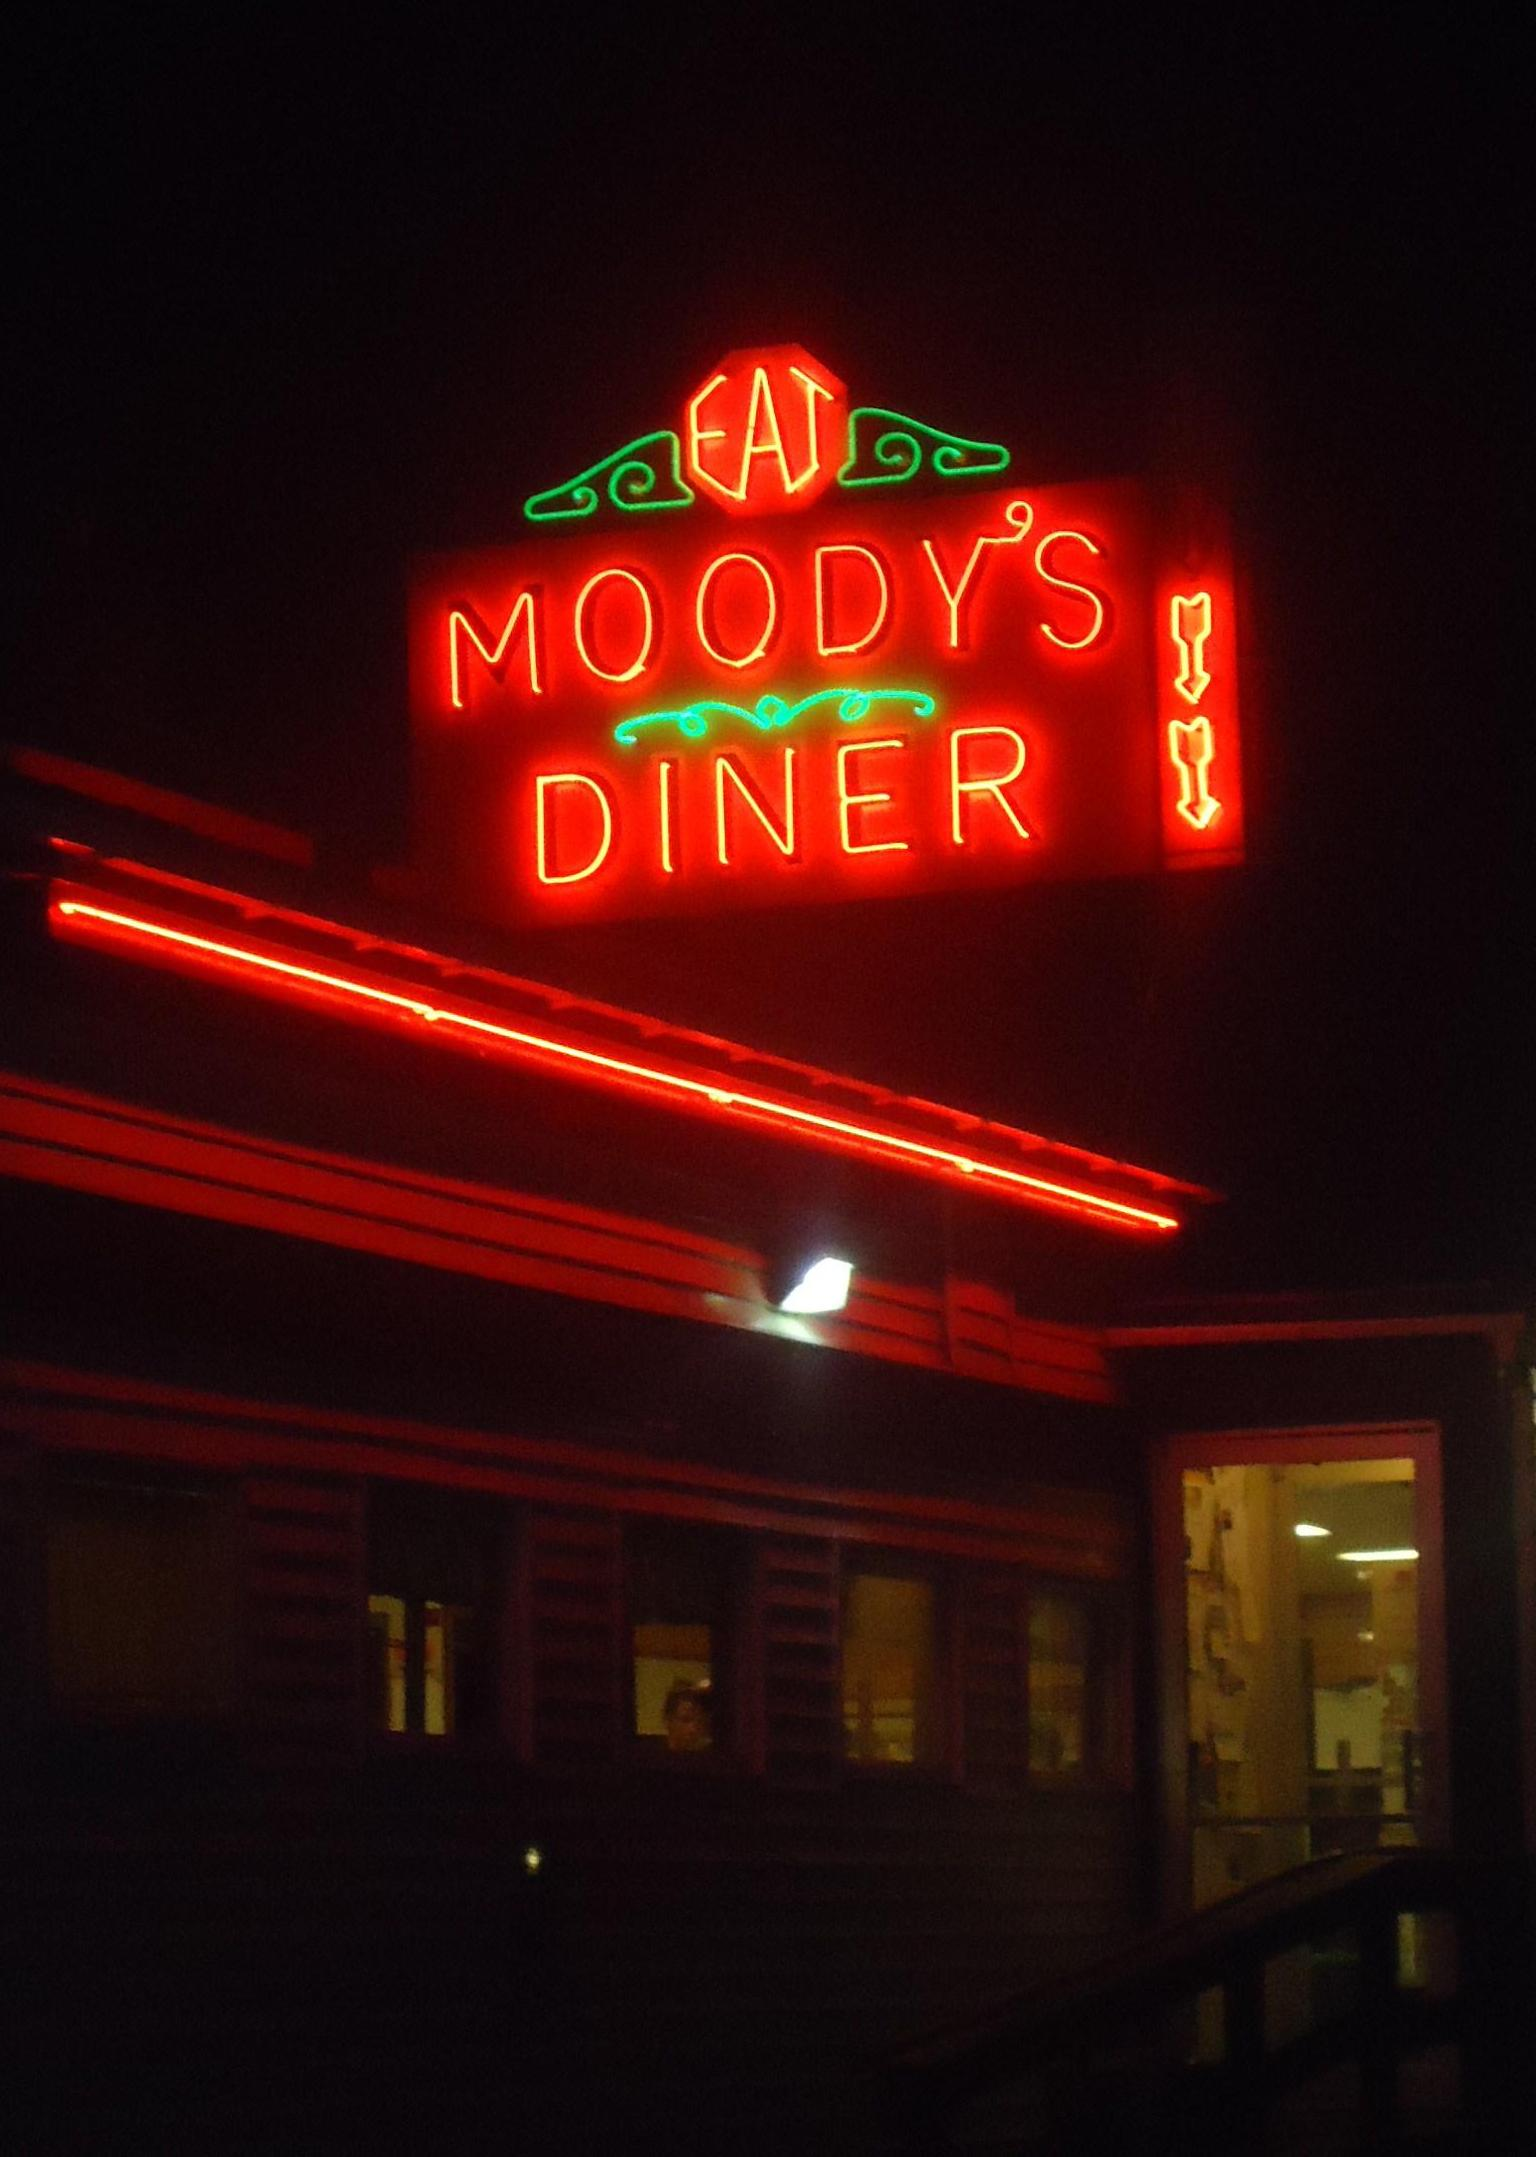 Moody's Diner is a classic old Maine diner from 1927.